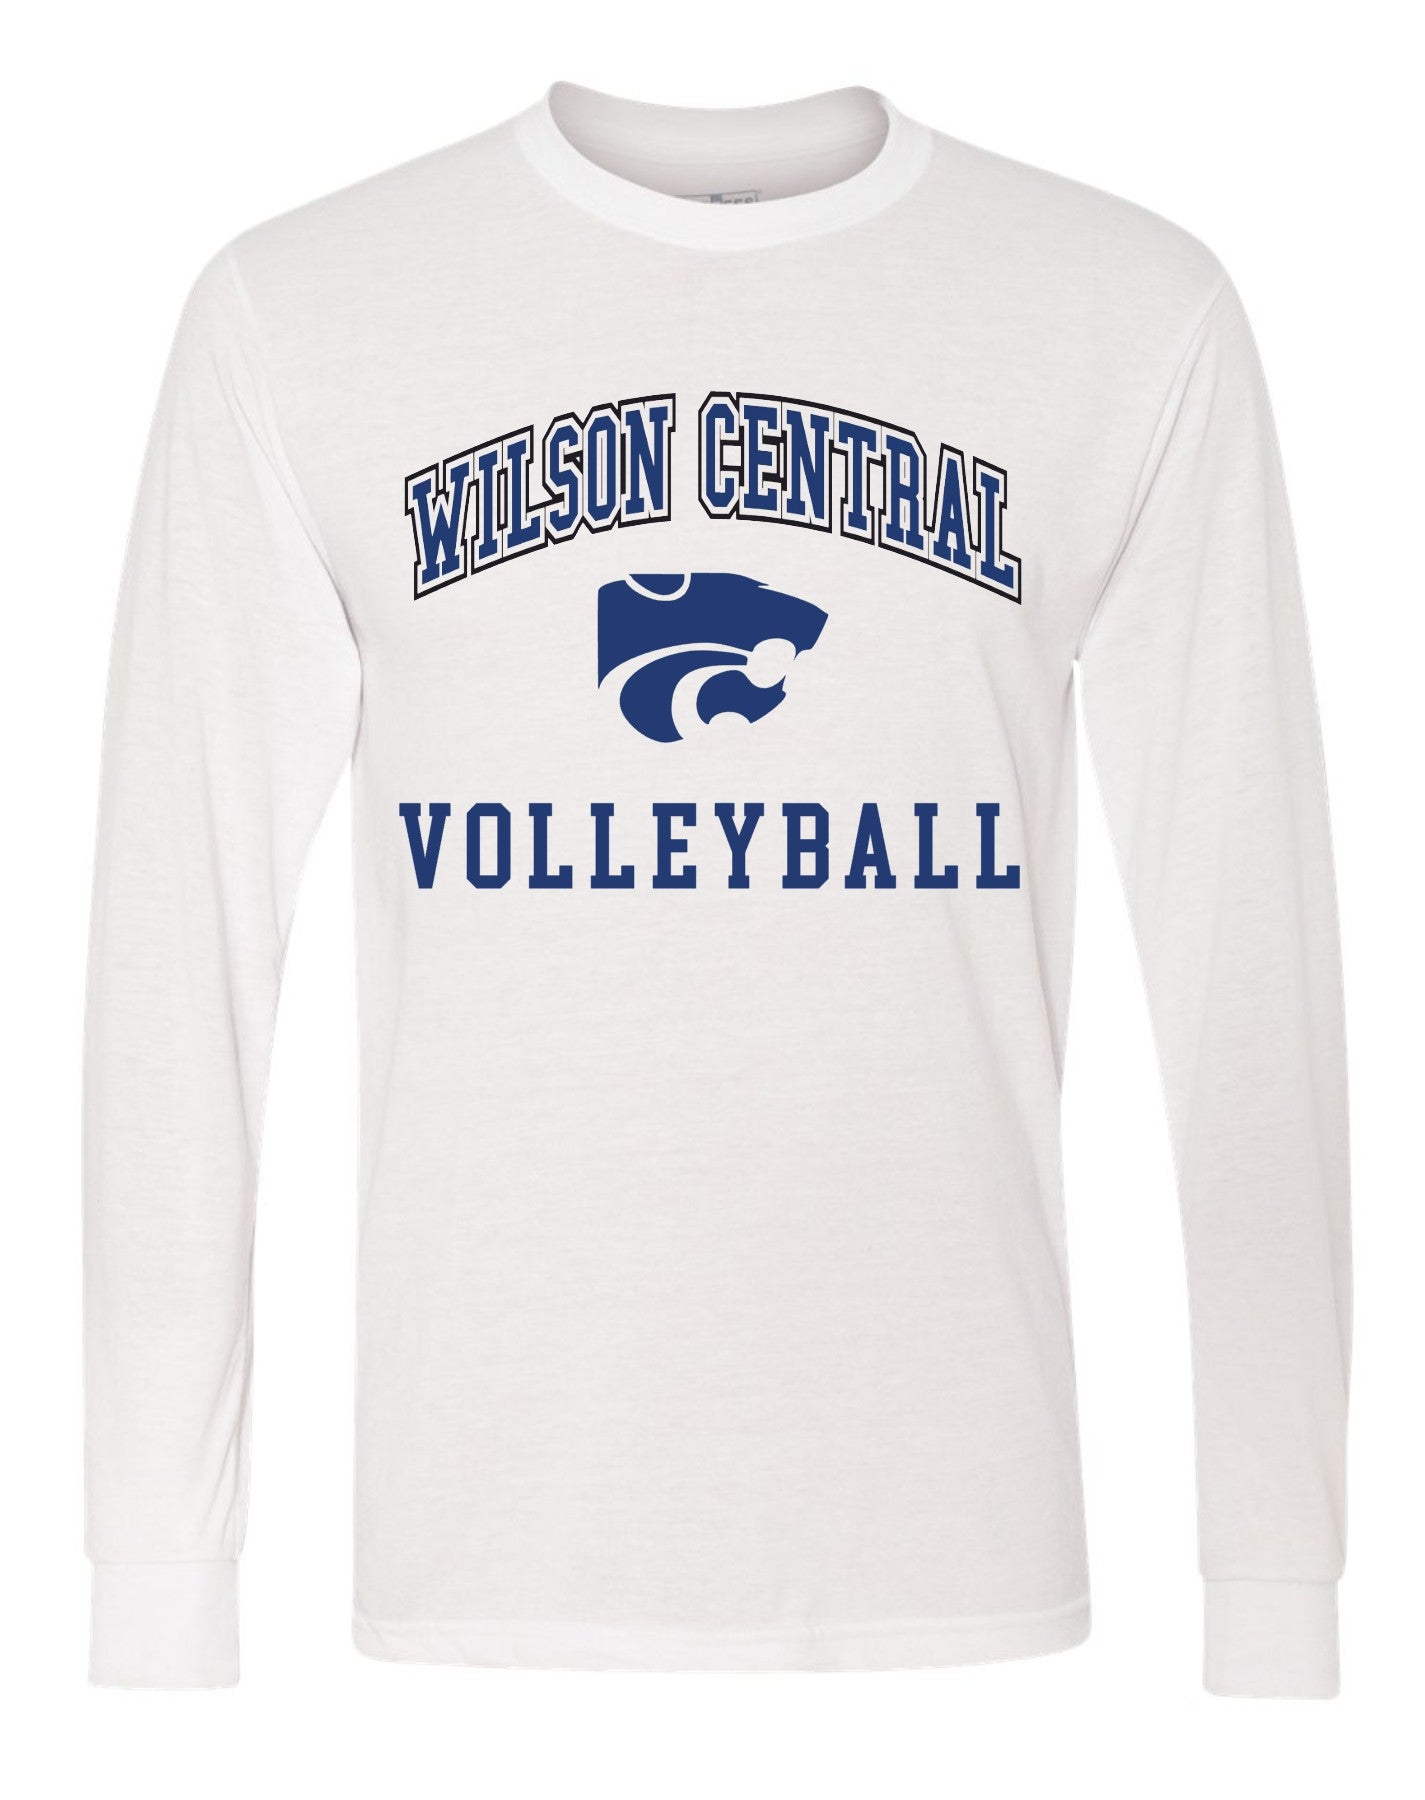 Wilson Central Volleyball - White Long Sleeve